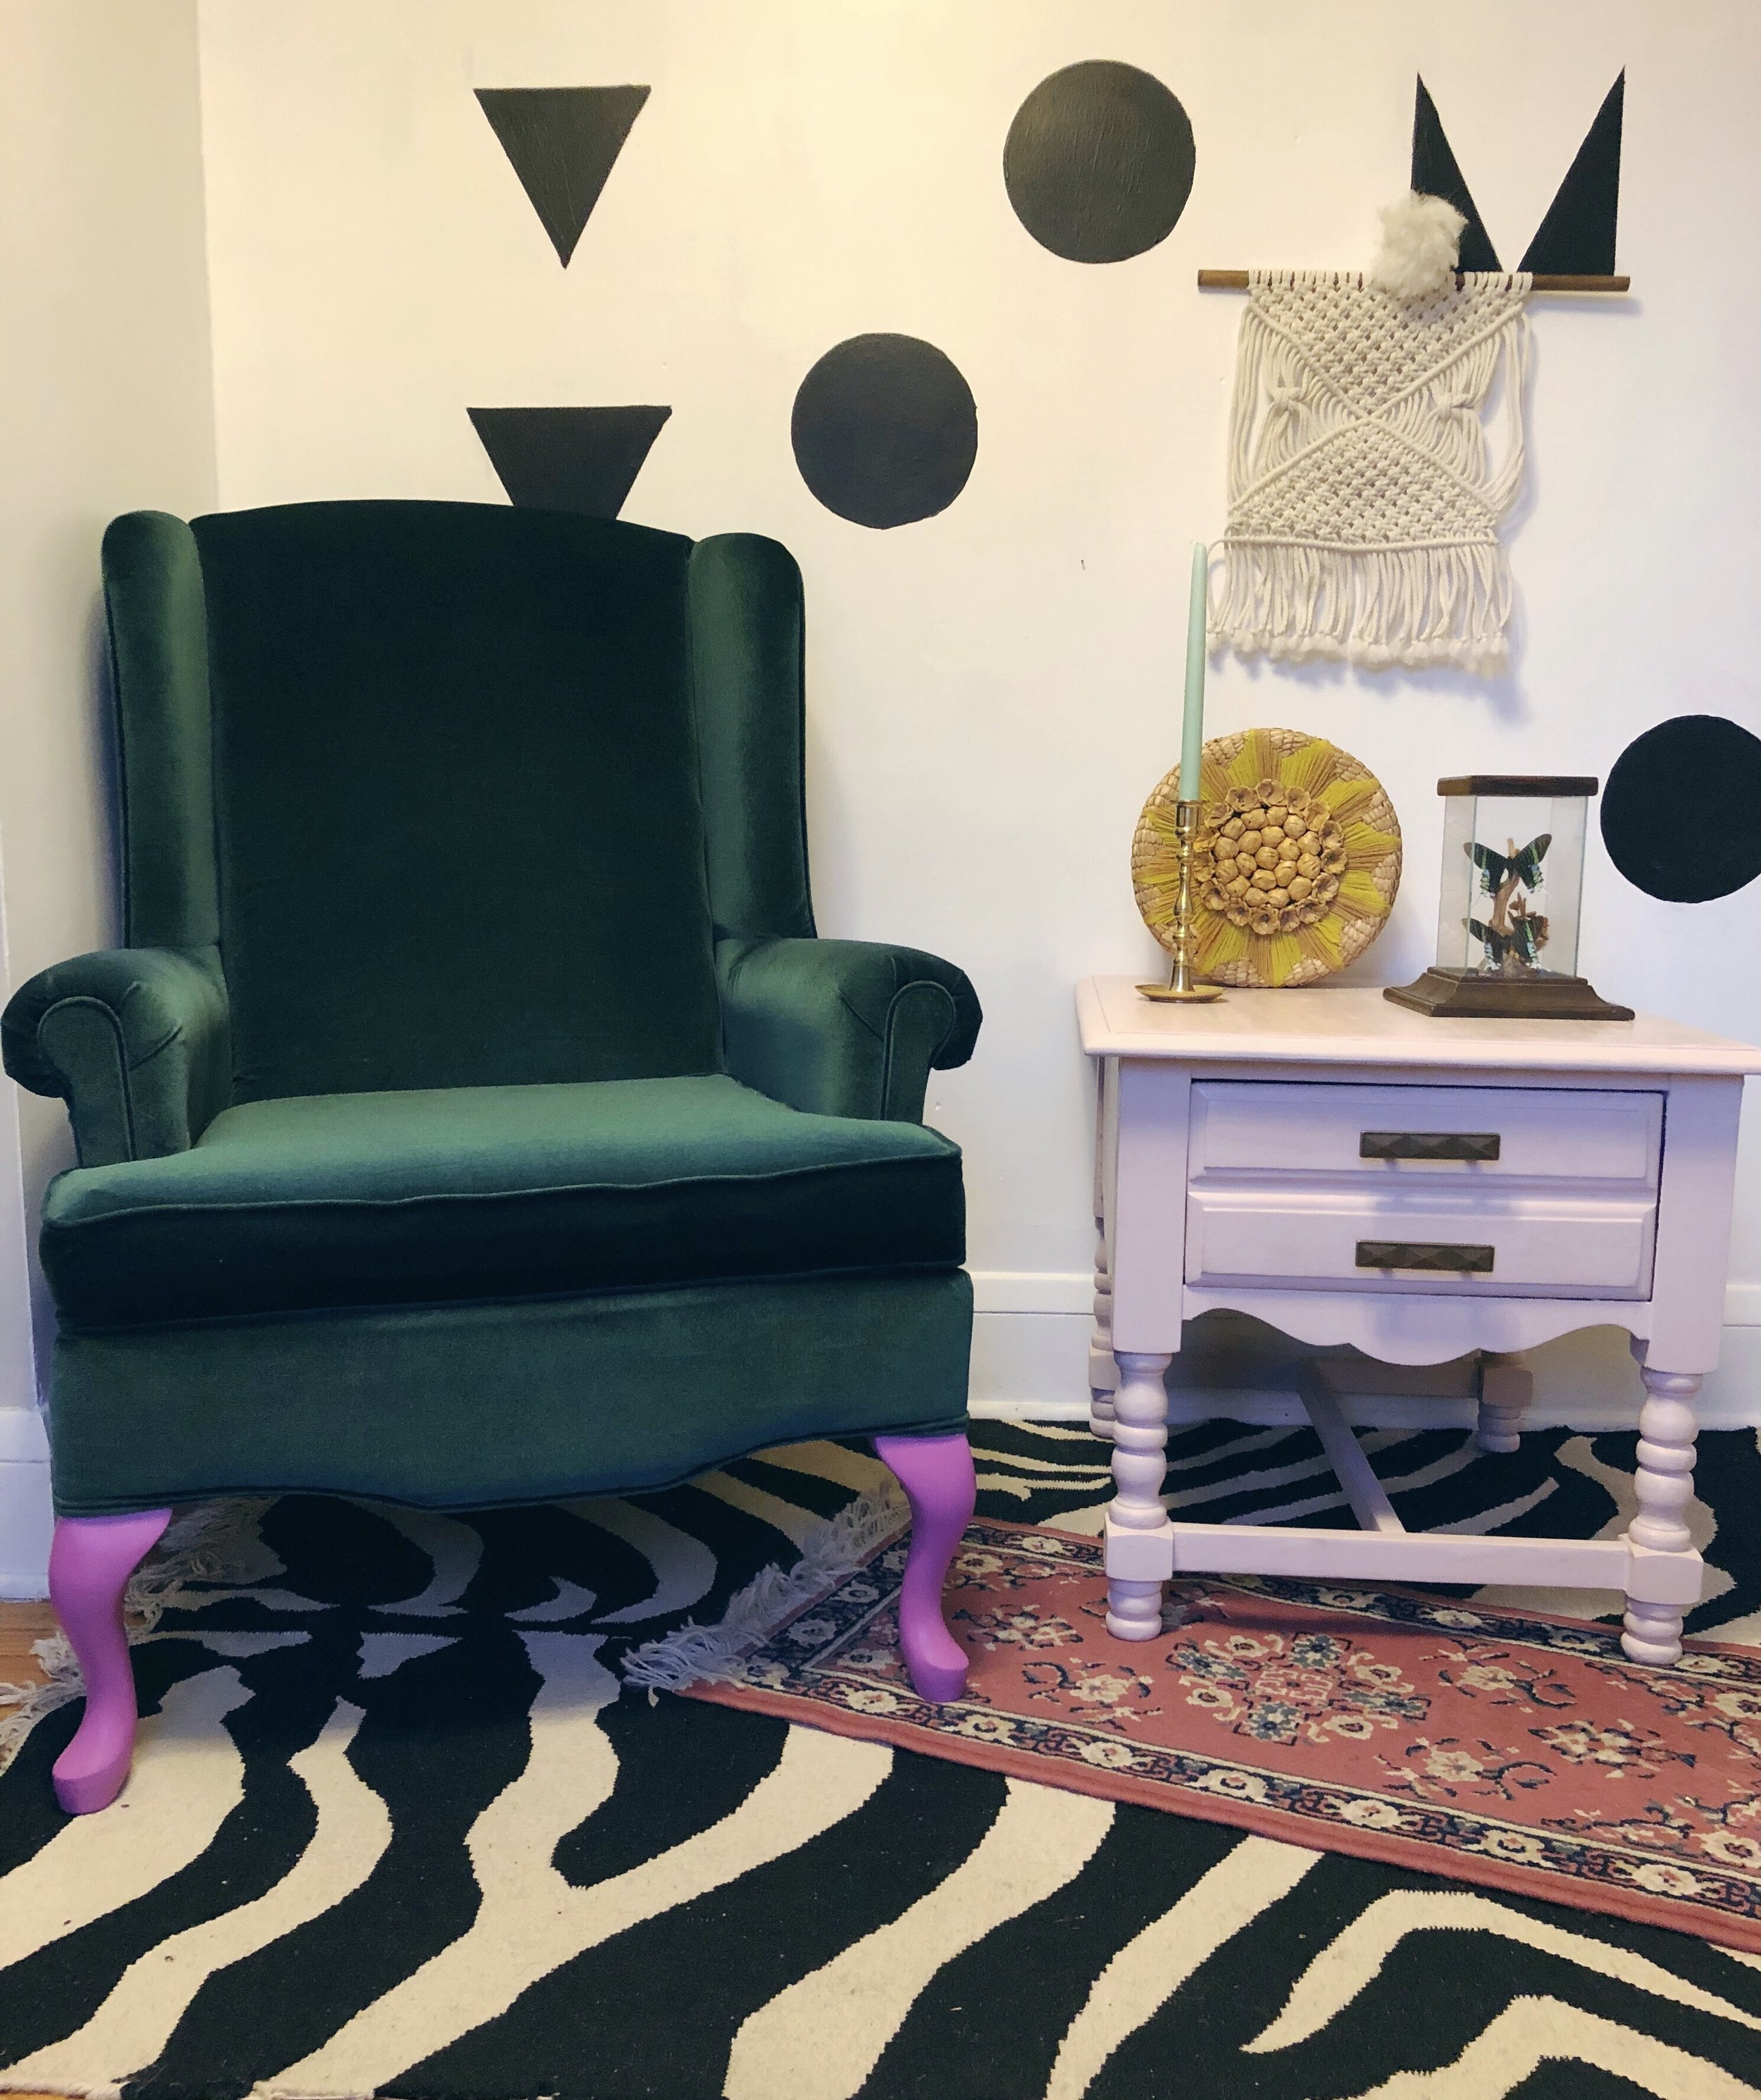 Shop the look:  Bold Boho Wingback Chair ,  Dark Blush Persian Style Rug ,  Blush Pink End Table ,  Brass Candlesticks ,  Starbust Wicker Basket,   Vintage Butterfly Terrarium  and  Macrame Wall Hanging .